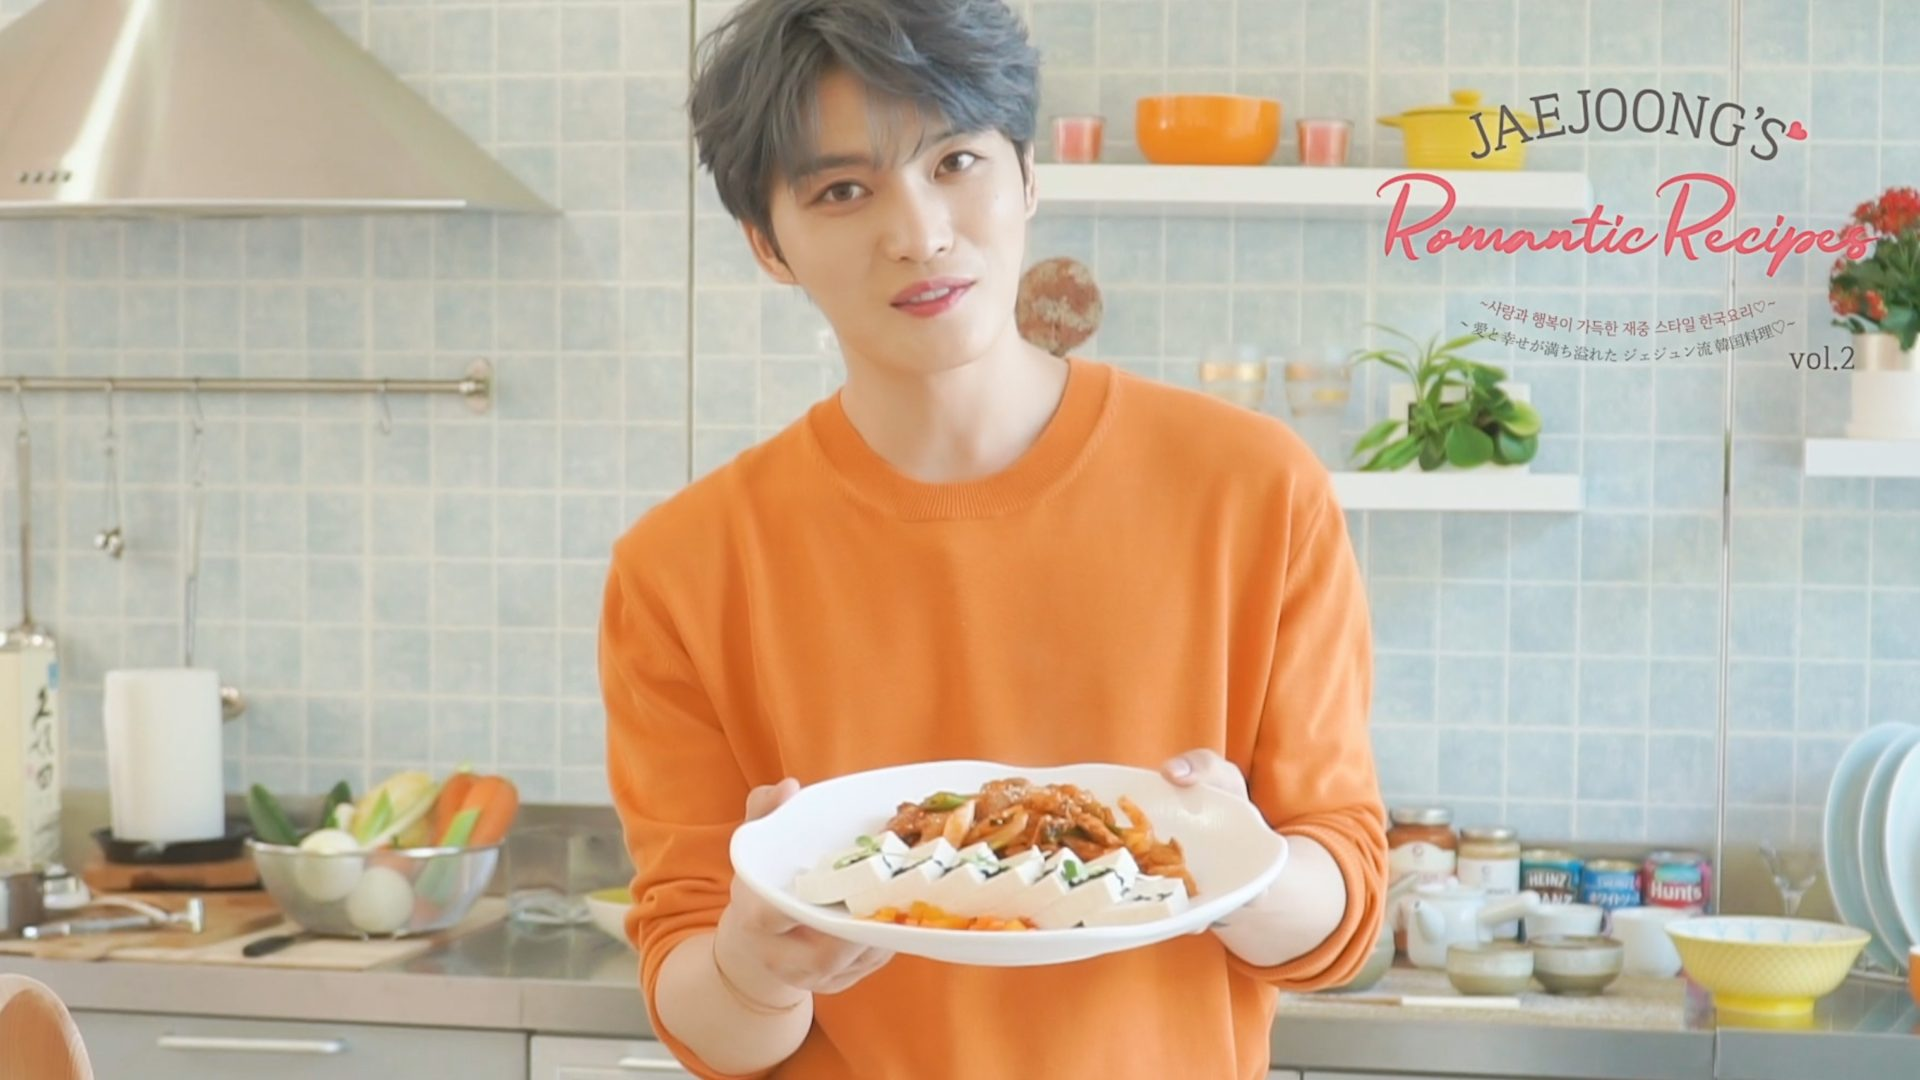 JAEJOONG`S ROMANTIC RECIPES Vol 2. レシピDVD 撮影&編集